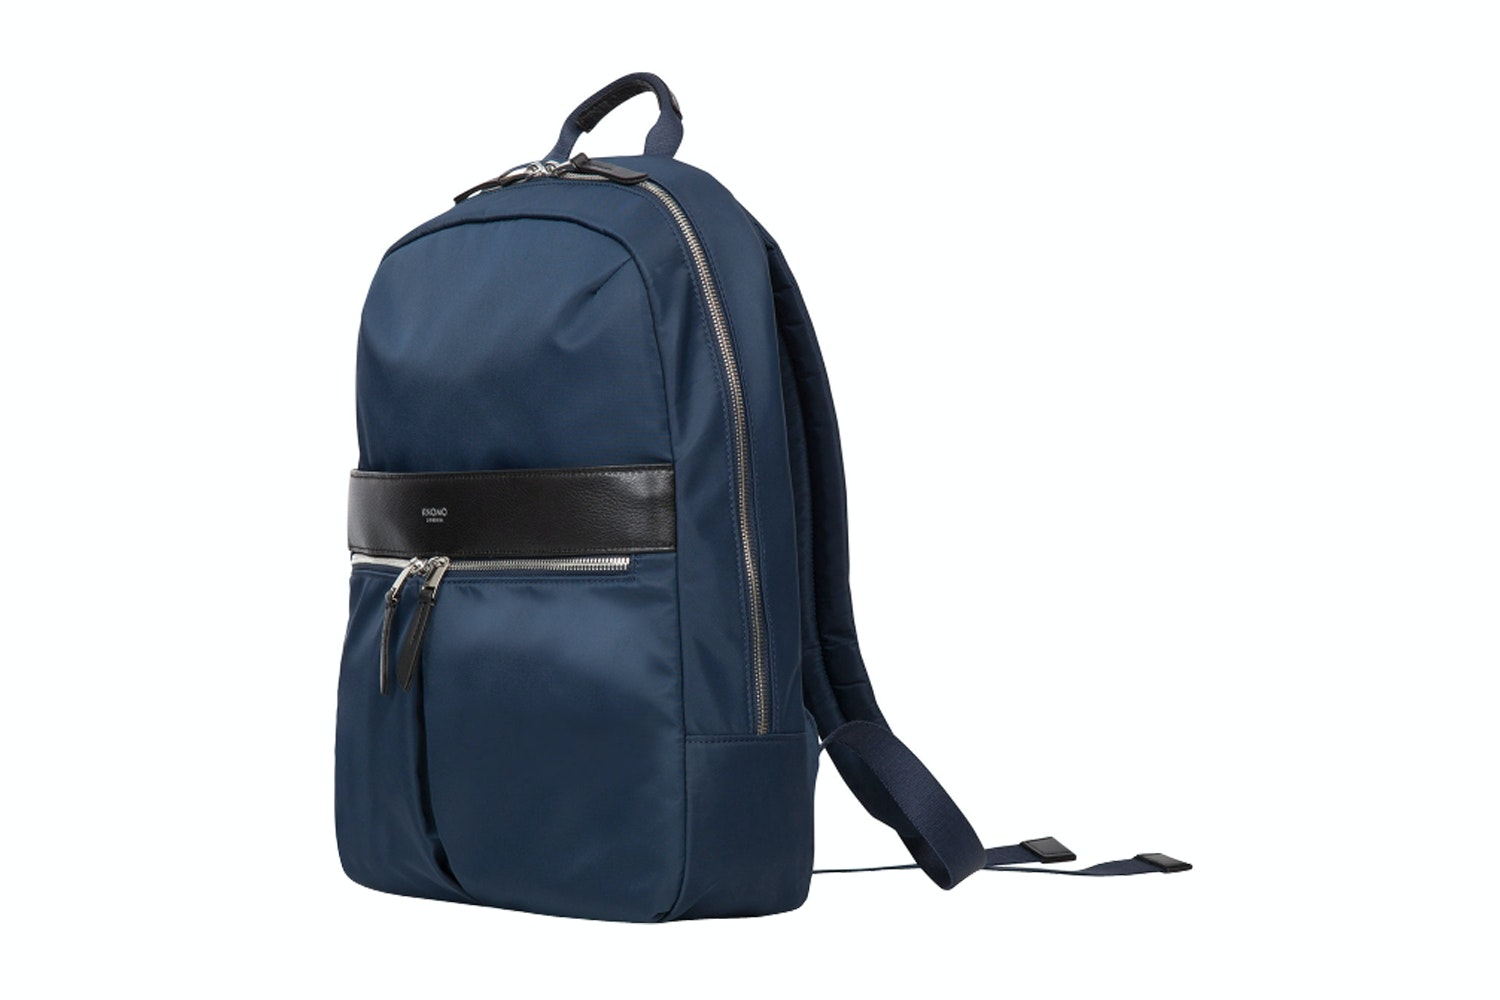 Knomo Beauchamp 14"